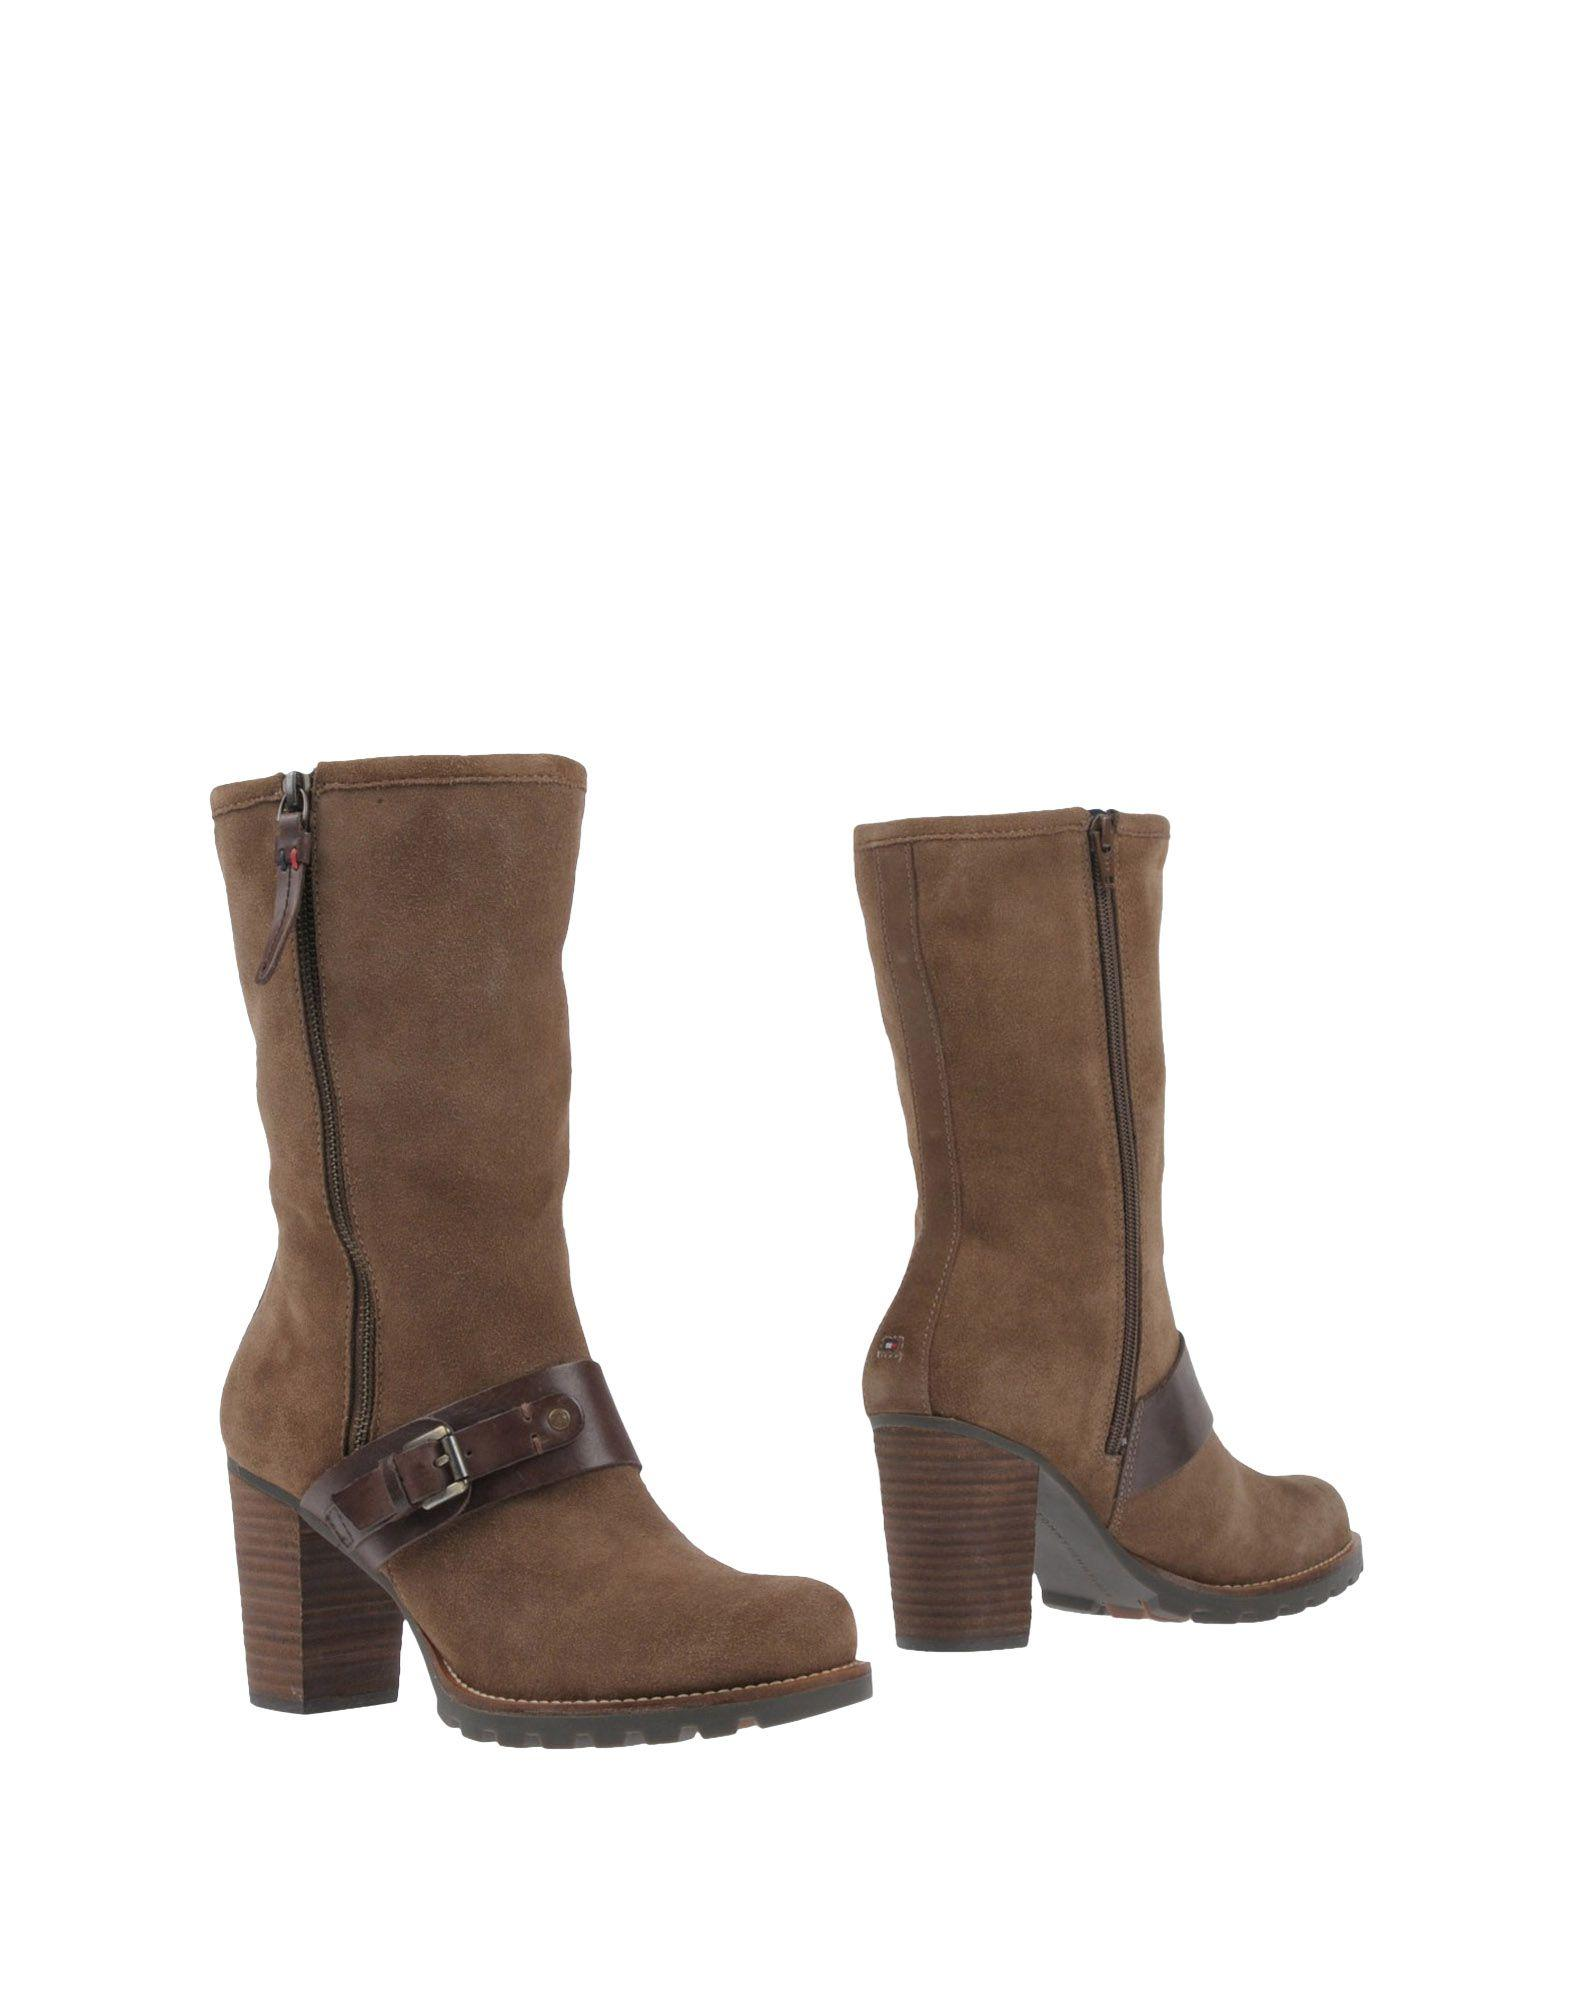 Tommy Hilfiger Ankle Boots In Khaki